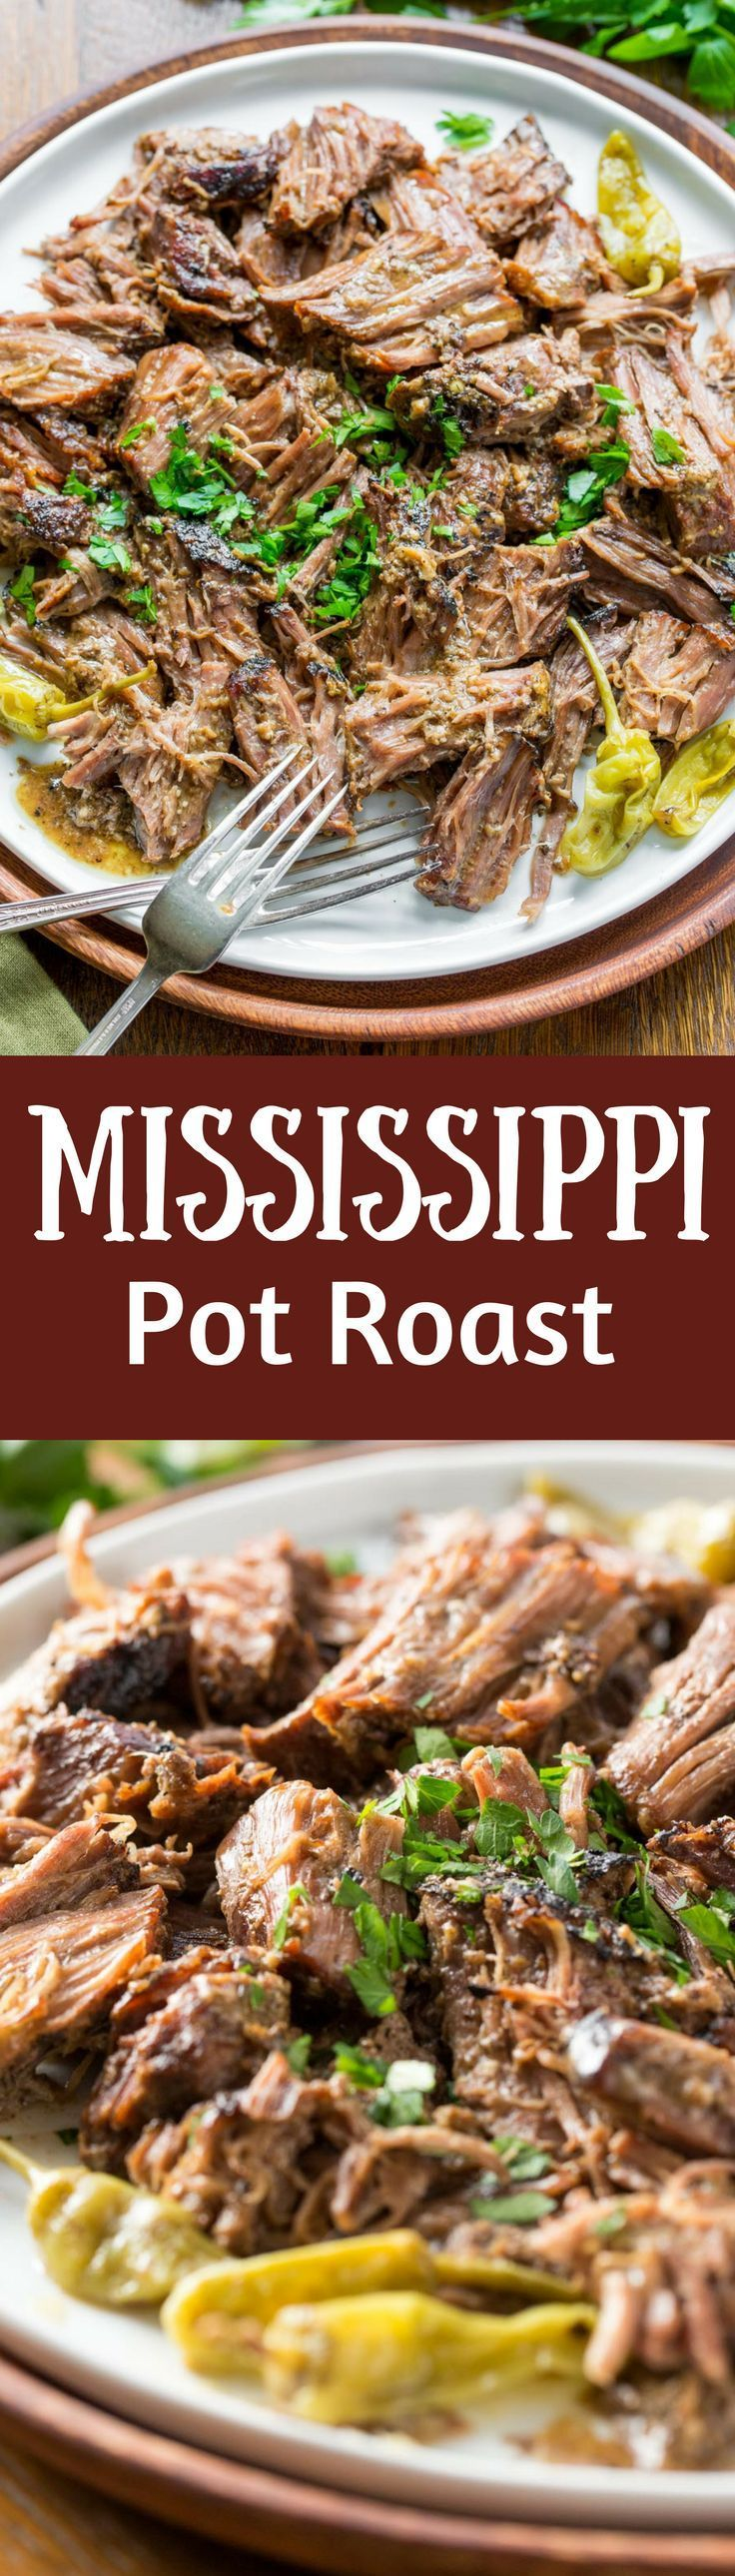 Mississippi Pot Roast - a tender, well flavored slow cooker pot roast with pepperoncini peppers and a simple homemade ranch dressing. Briny little pepperoncini peppers add a spicy punch of flavor, and it couldn't be easier to make! http://www.savingdessert.com